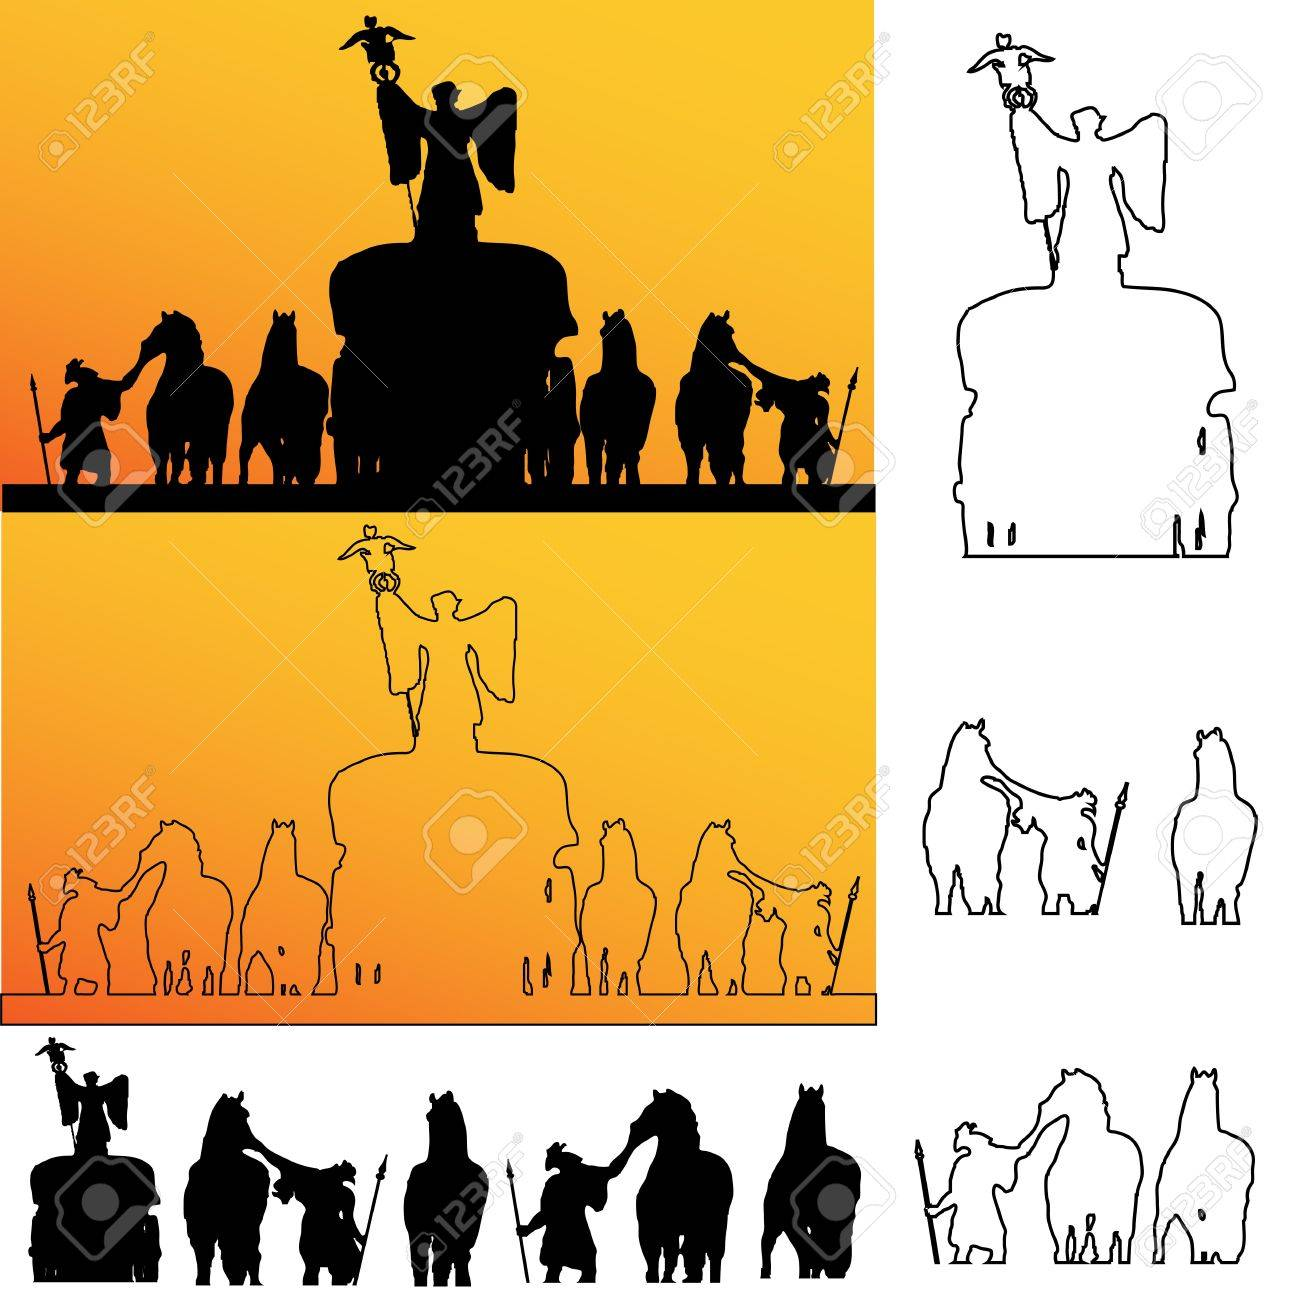 Roman soldiers Silhouette Stock Vector - 14500804